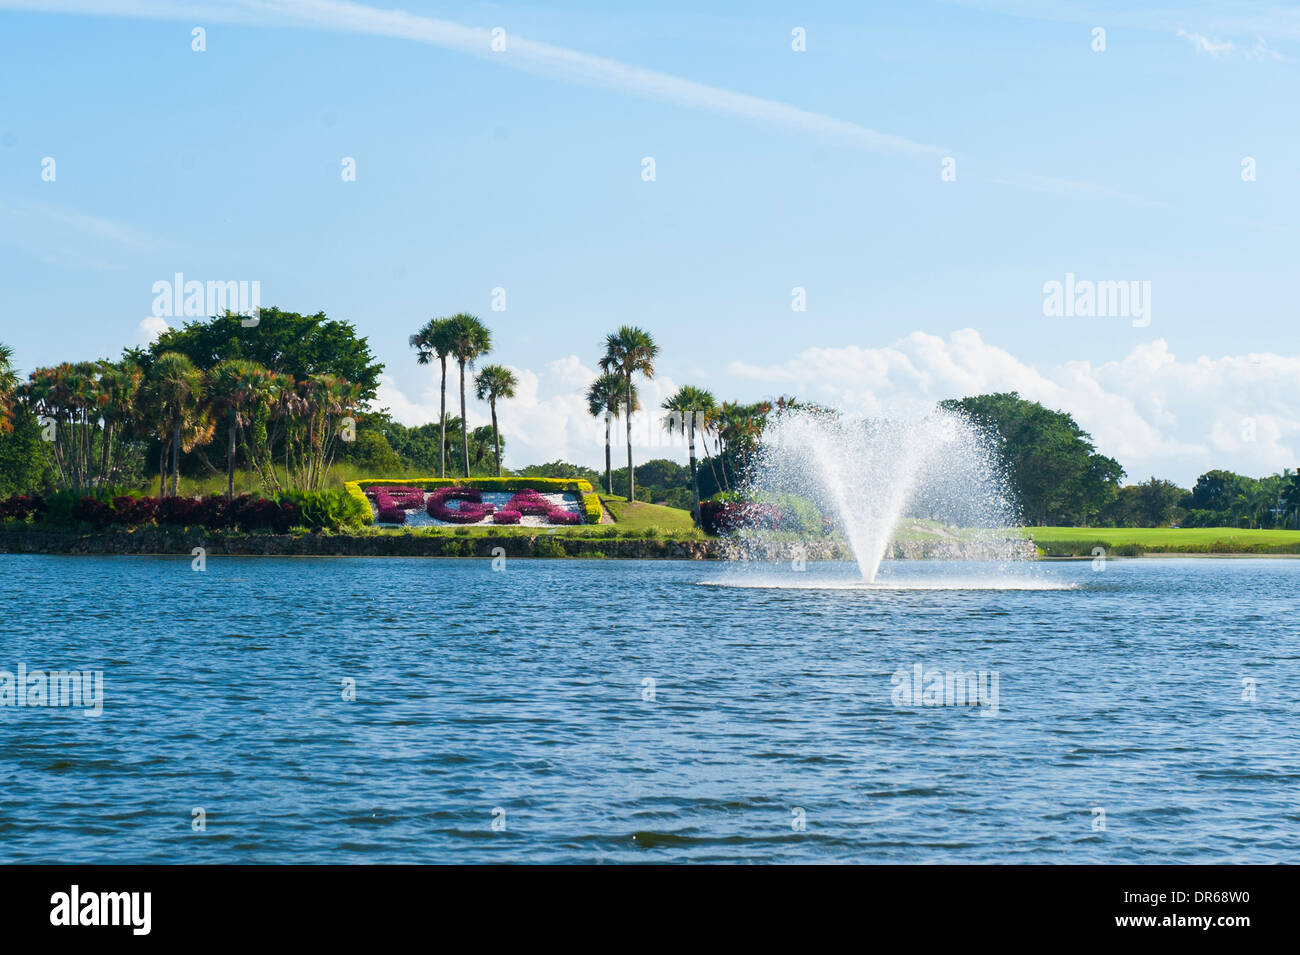 USA Florida PGA National Golf Course Palm Beach Gardens lake water feature fountain blue sky trees lawn flowers Stock Photo